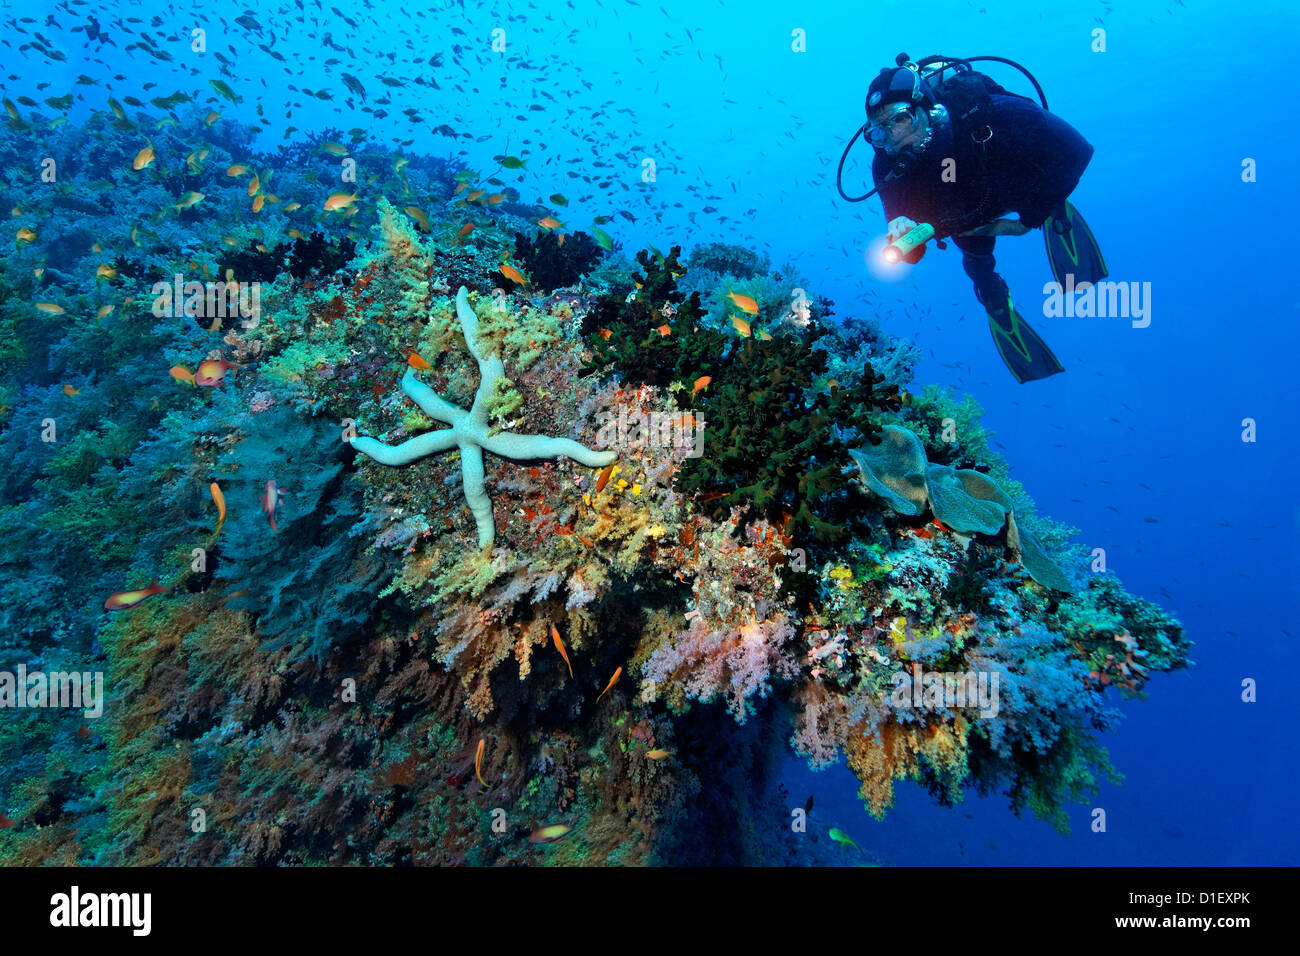 Diver at reef landscape with seastar, Baa Atoll, Maldives, underwater shot - Stock Image